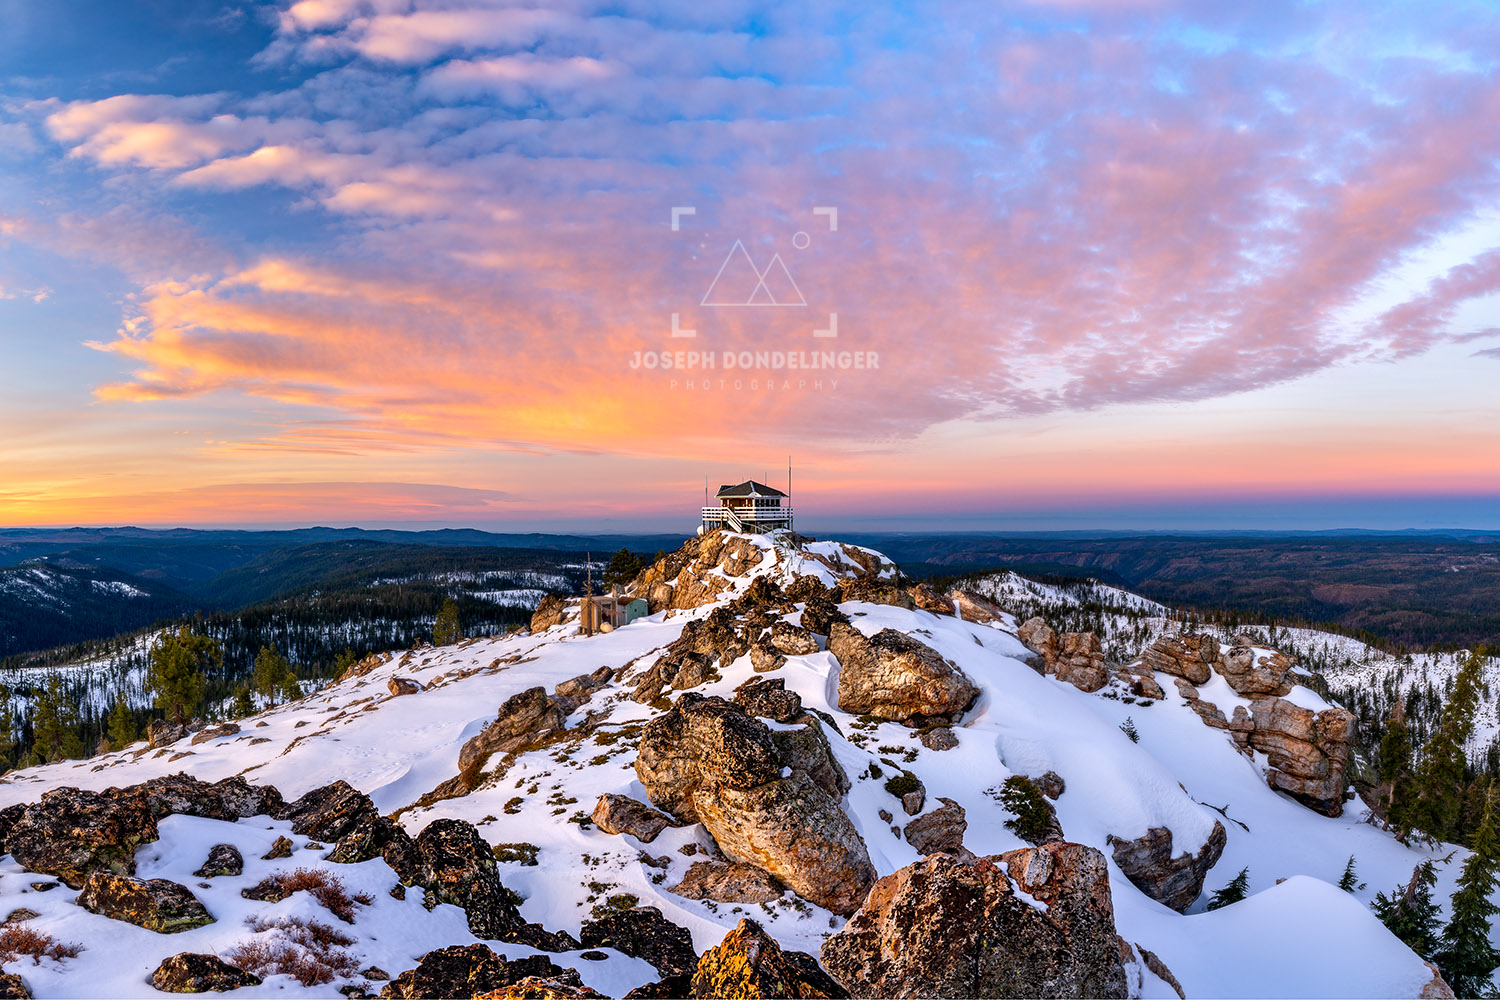 Spectacular sunrise at Duncan Peak Fire Lookout in the winter